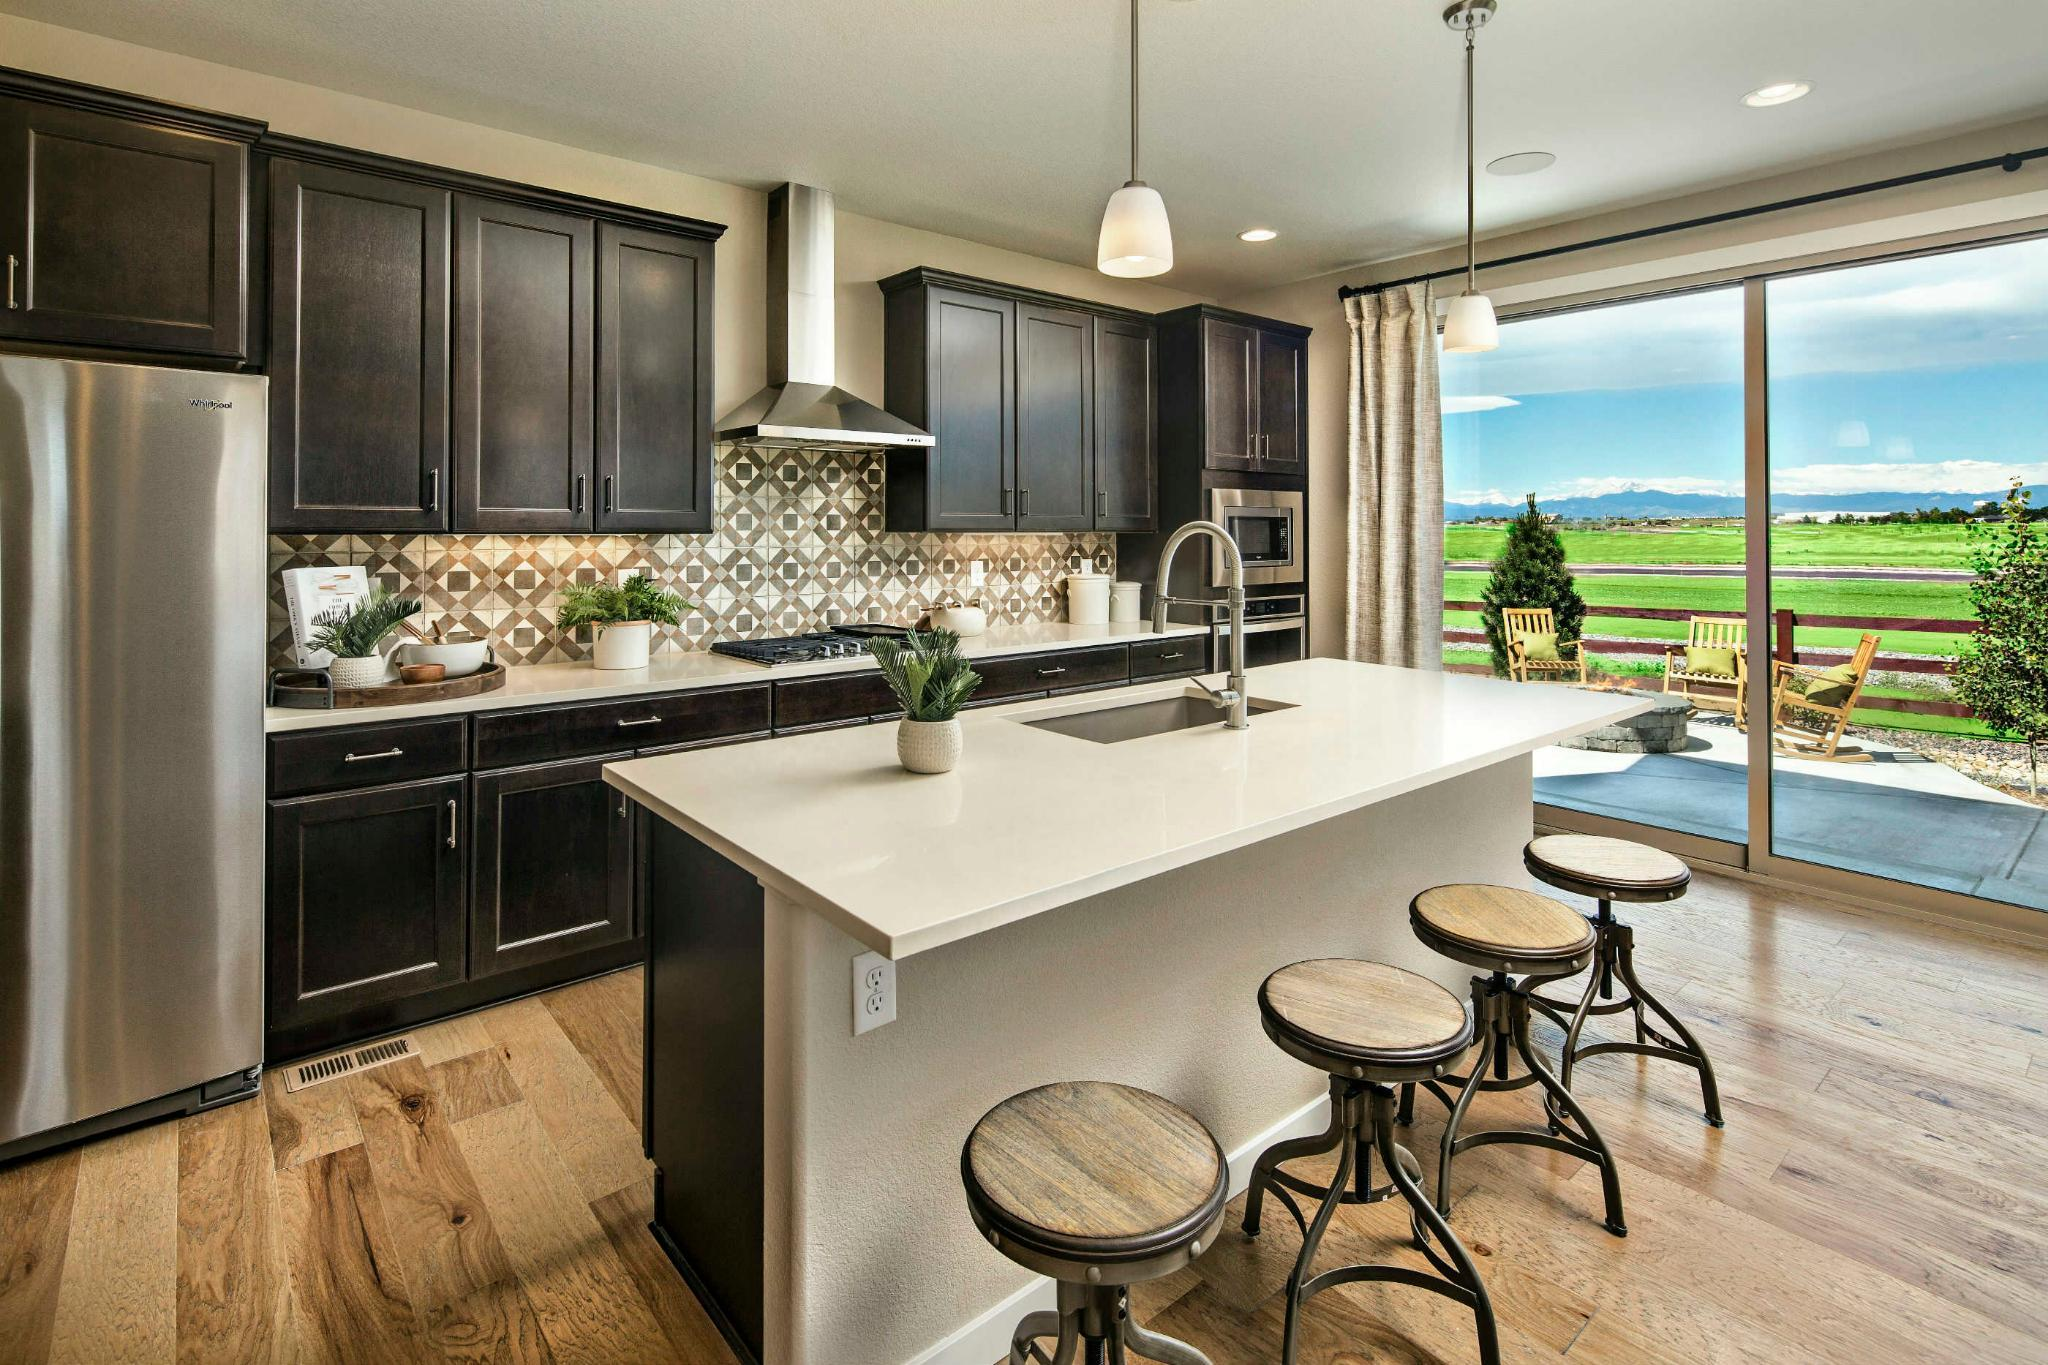 Kitchen featured in the Plan C407 By American Legend Homes in Greeley, CO